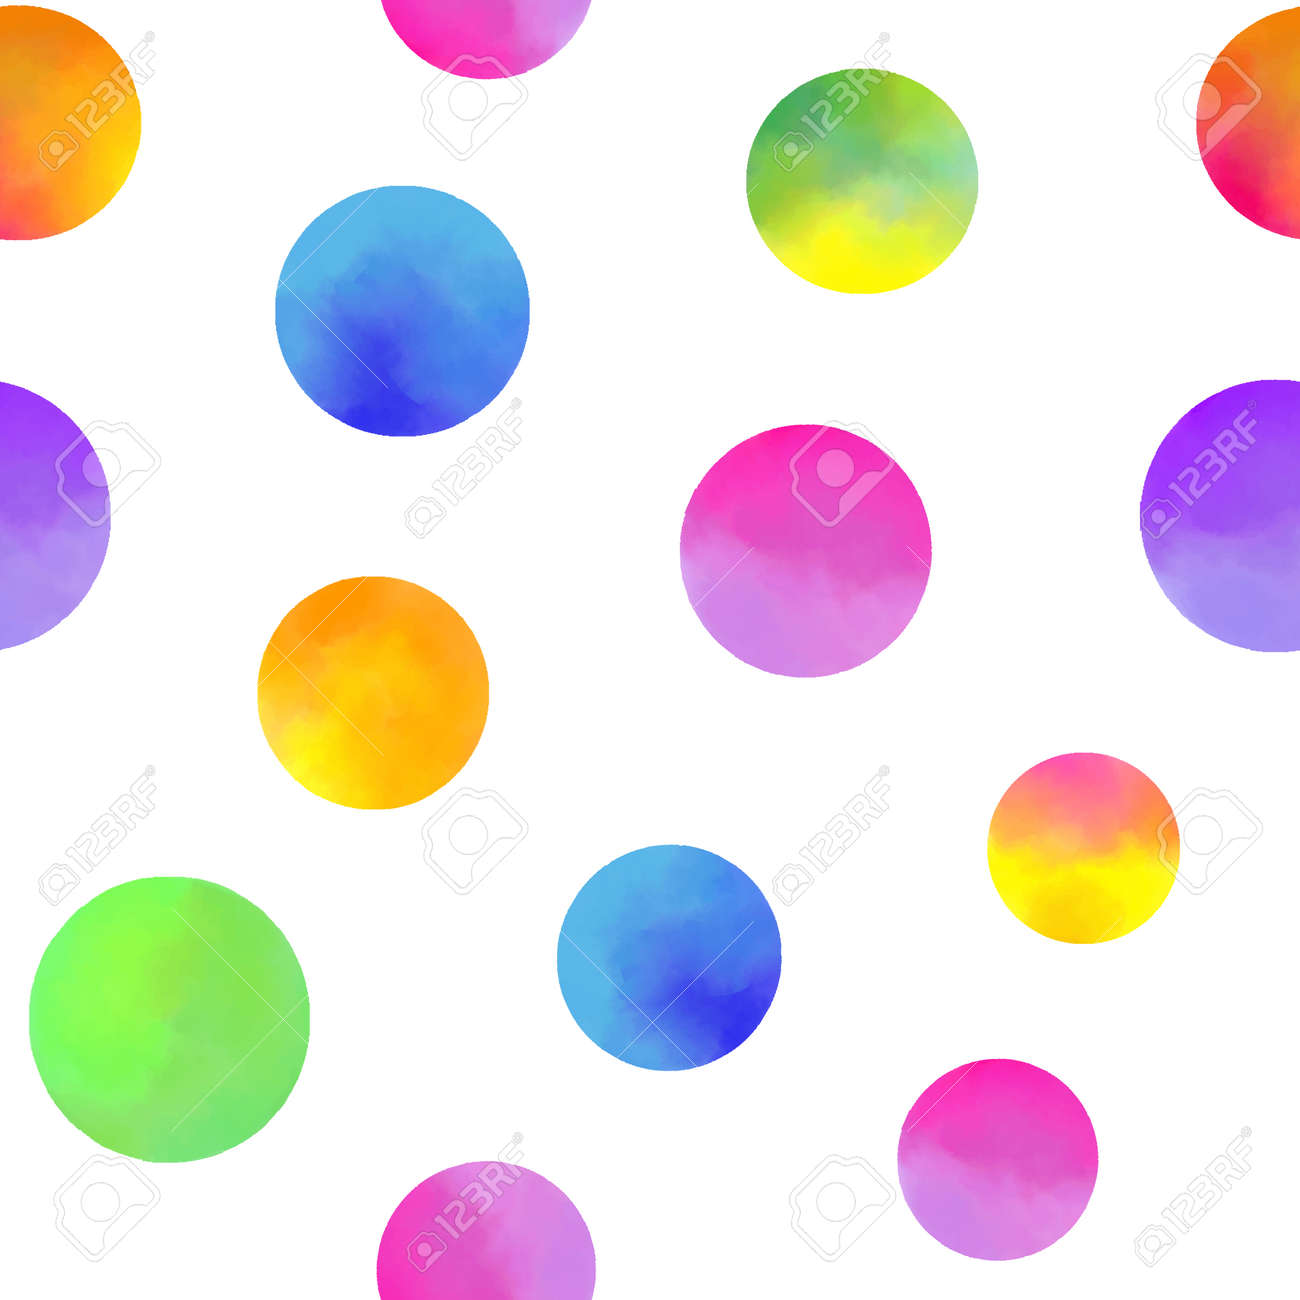 pattern with watercolor circles - 168416098